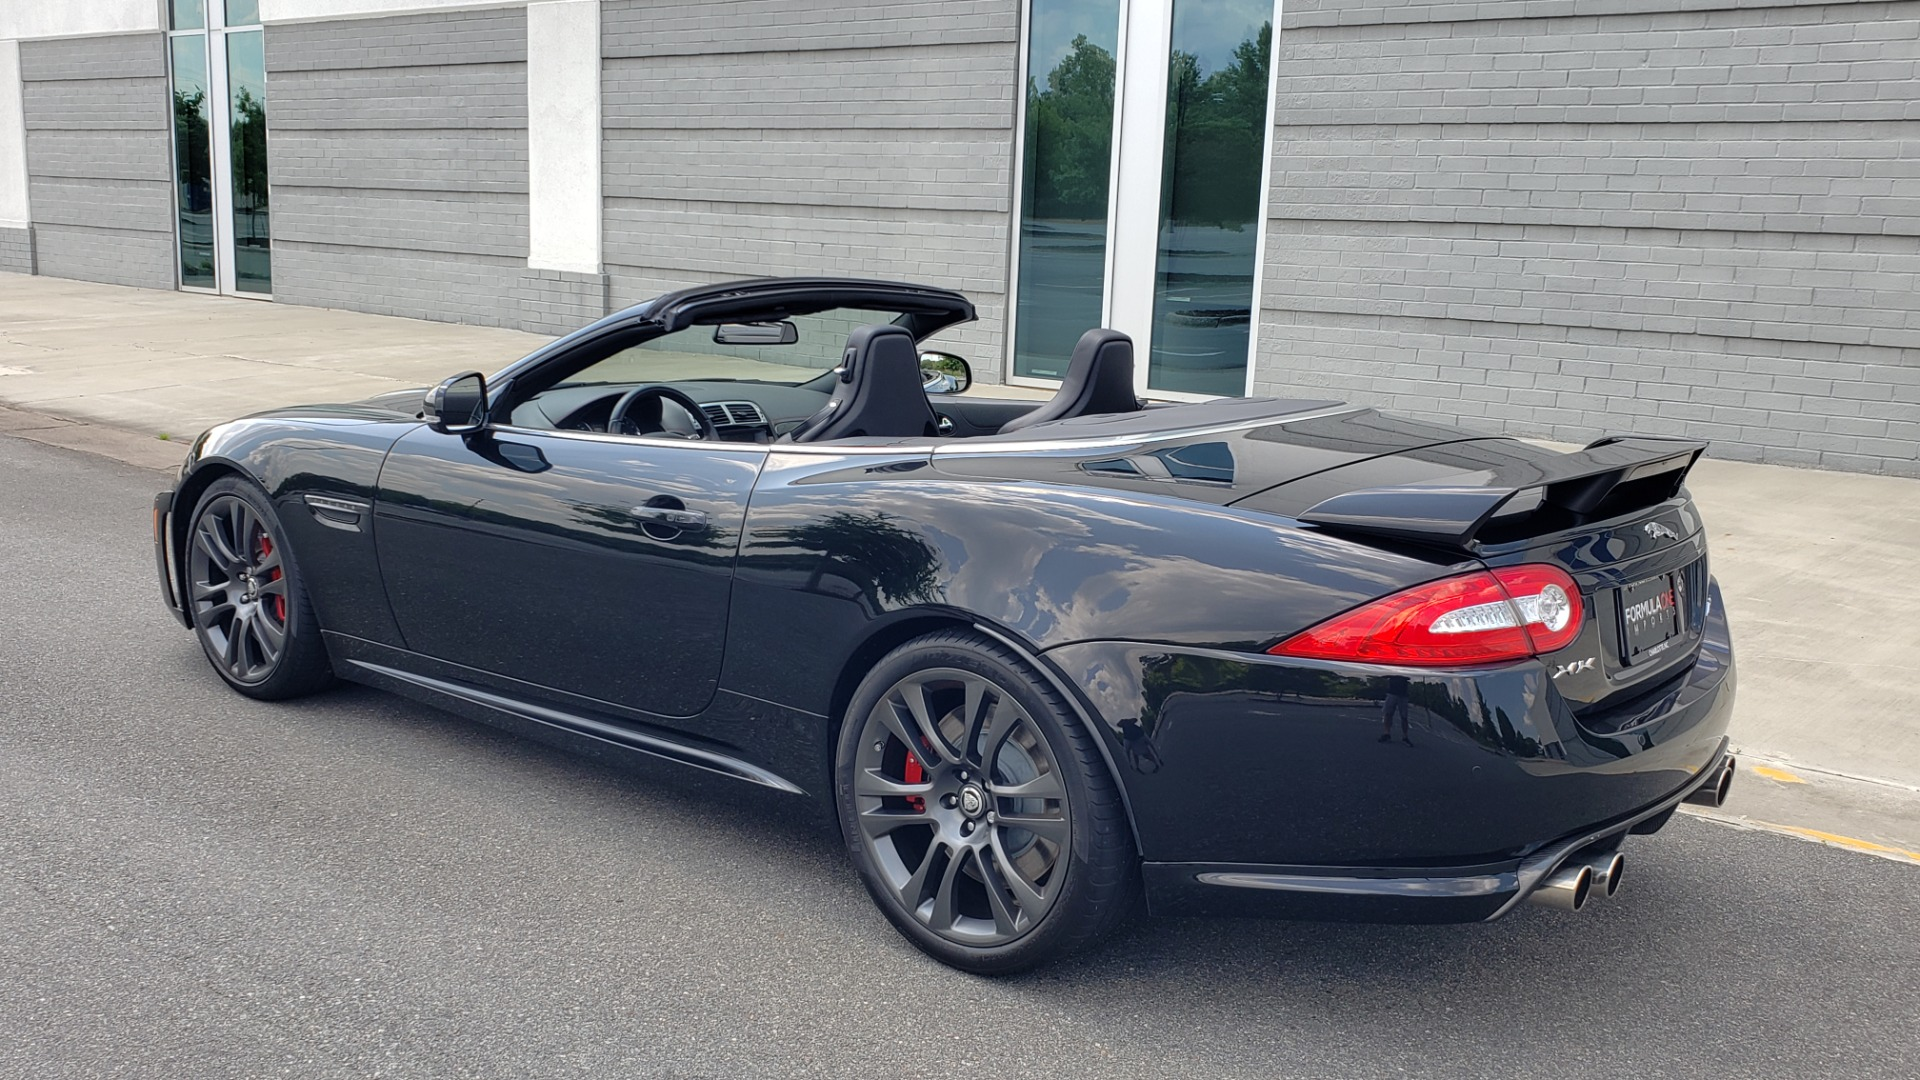 Used 2013 Jaguar XK R-S CONVERTIBLE / SC 5.0L V8 (550HP) / ZF 6-SPD AUTO / NAV / REARVIEW for sale $74,995 at Formula Imports in Charlotte NC 28227 5